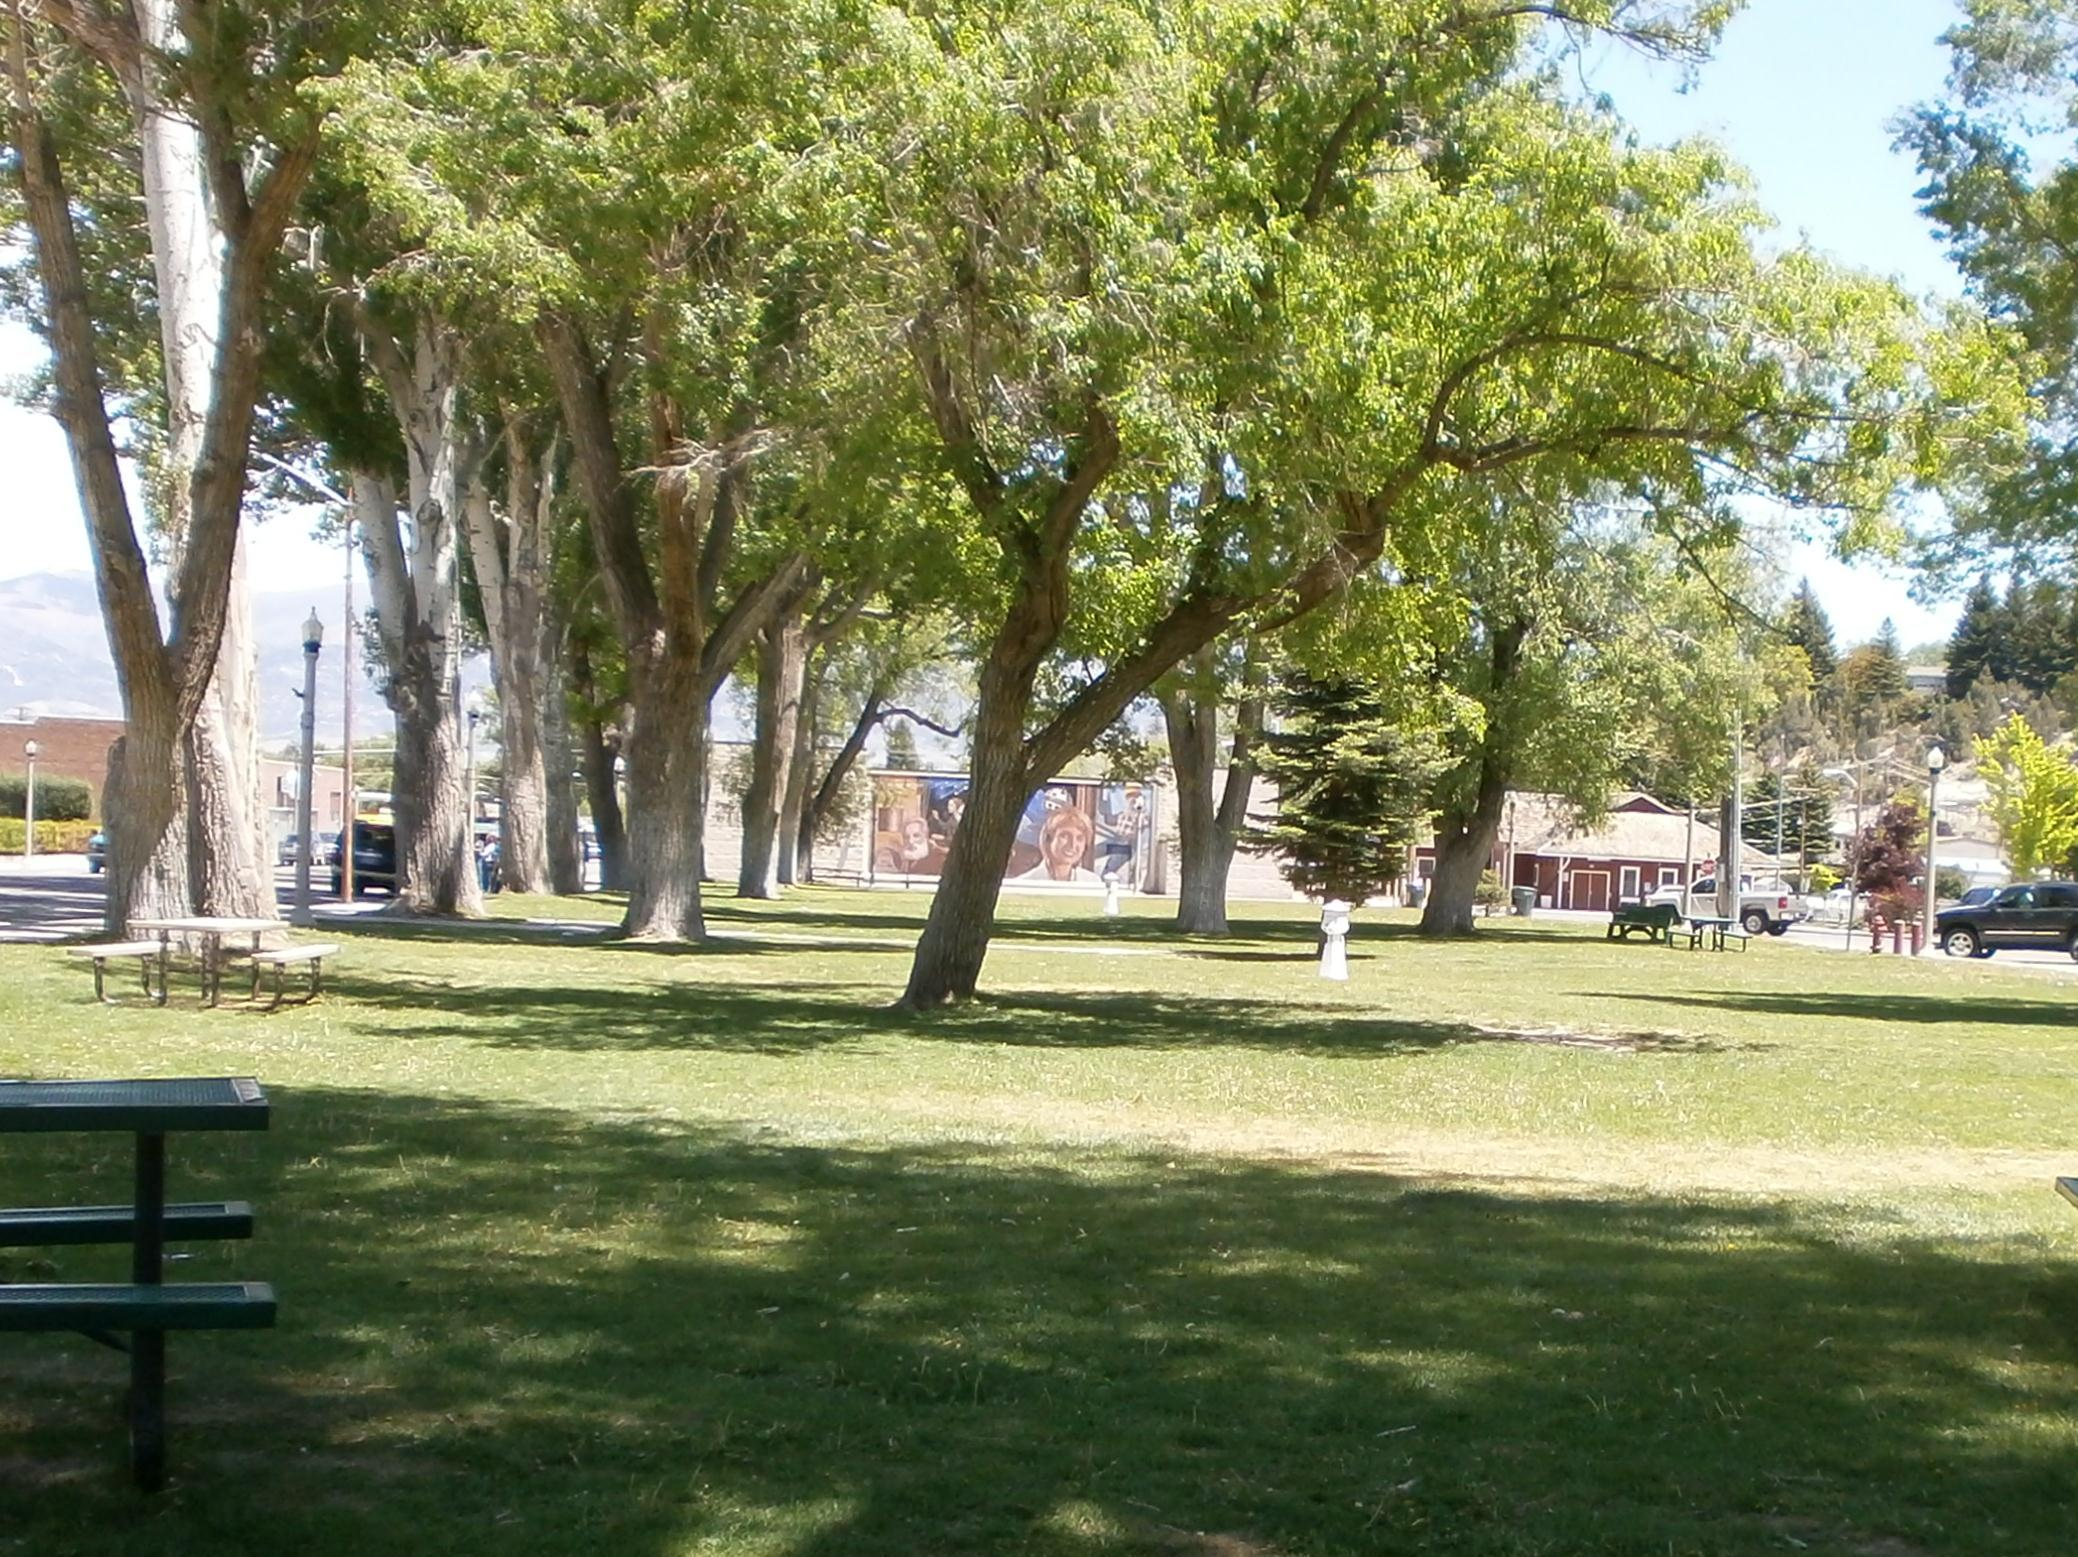 Trees near a Grassy Area and Picnic Table